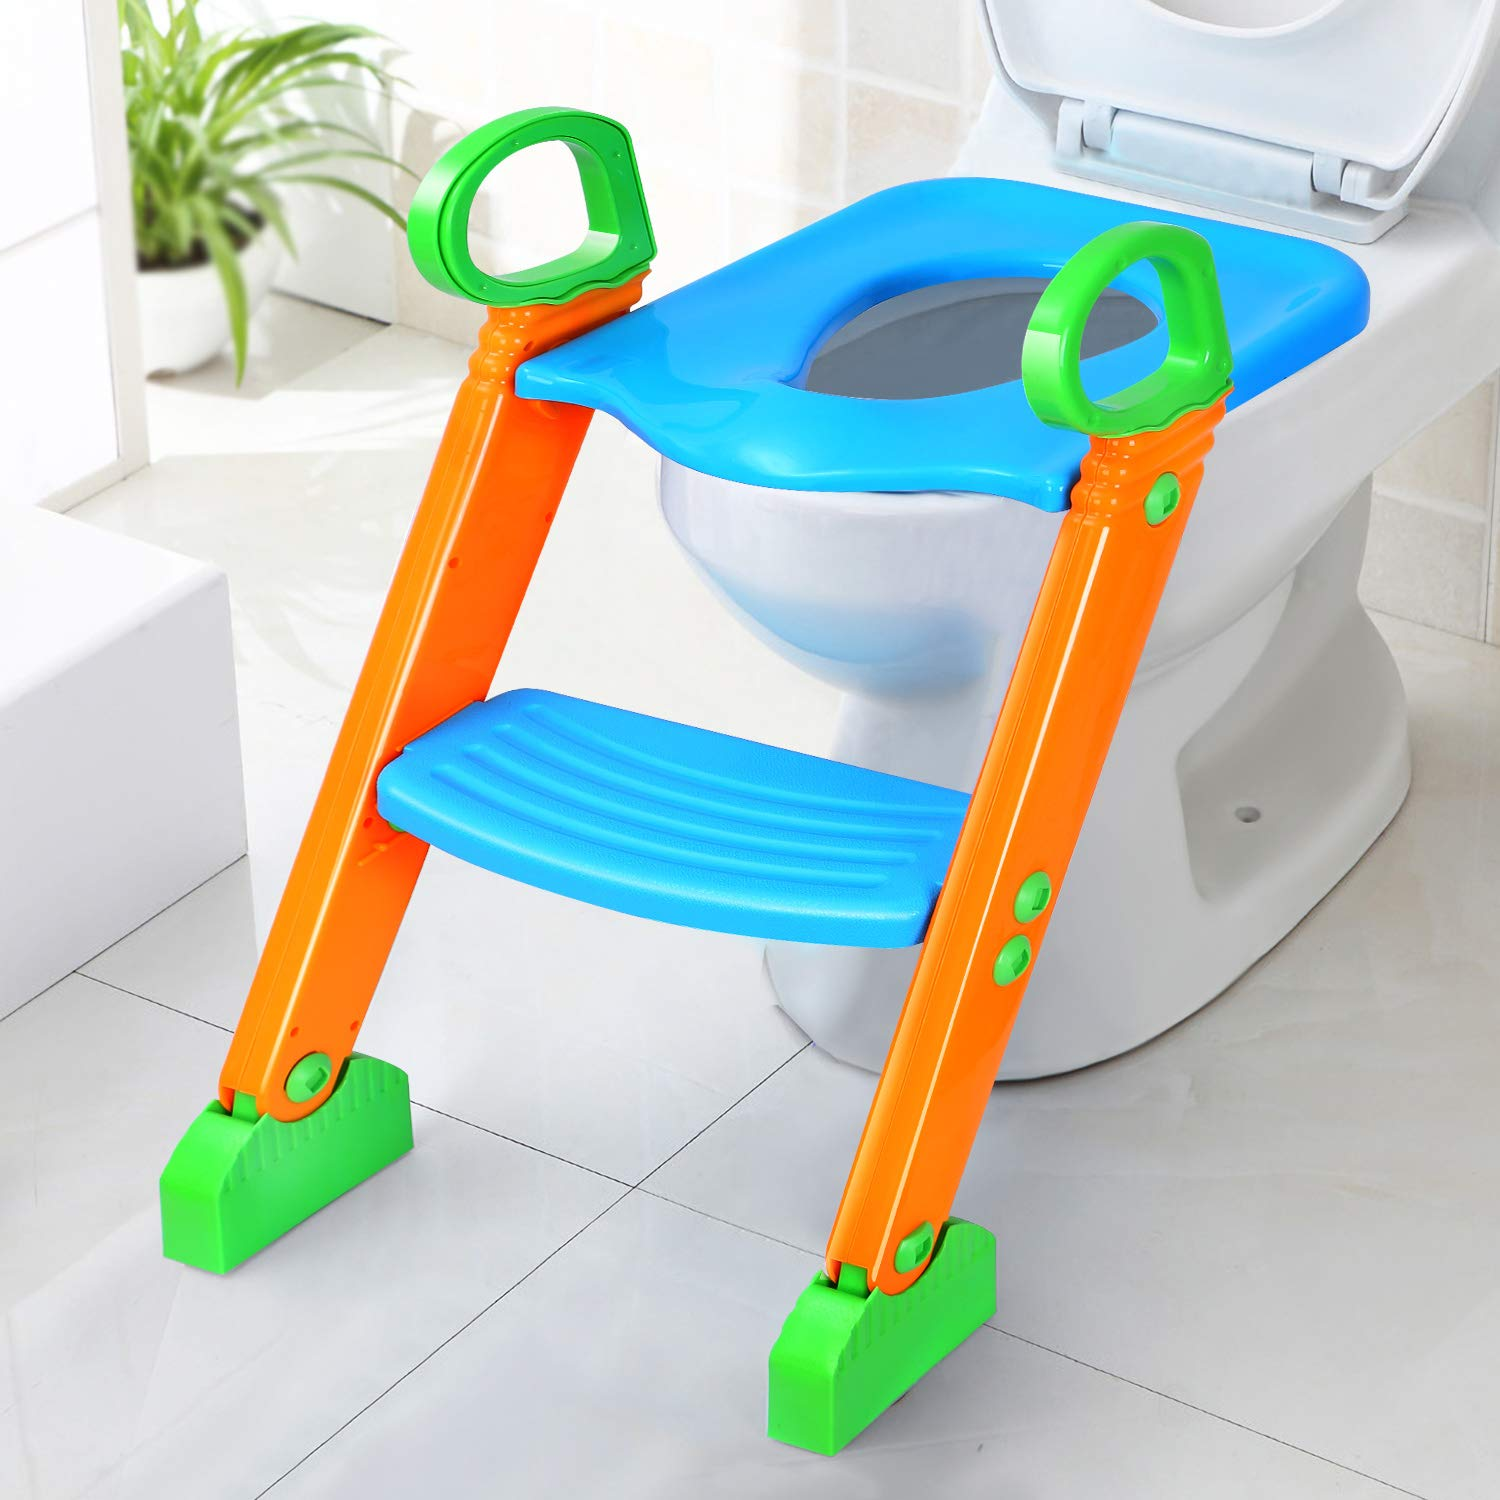 Mangohood Potty Training Seat with Step Stool Ladder and Handles for Baby Toddler Kid Children Boys and Girls Toilet Training Chair with Padded Soft Cushion and Non-Slip Wide Step Green Blue PU